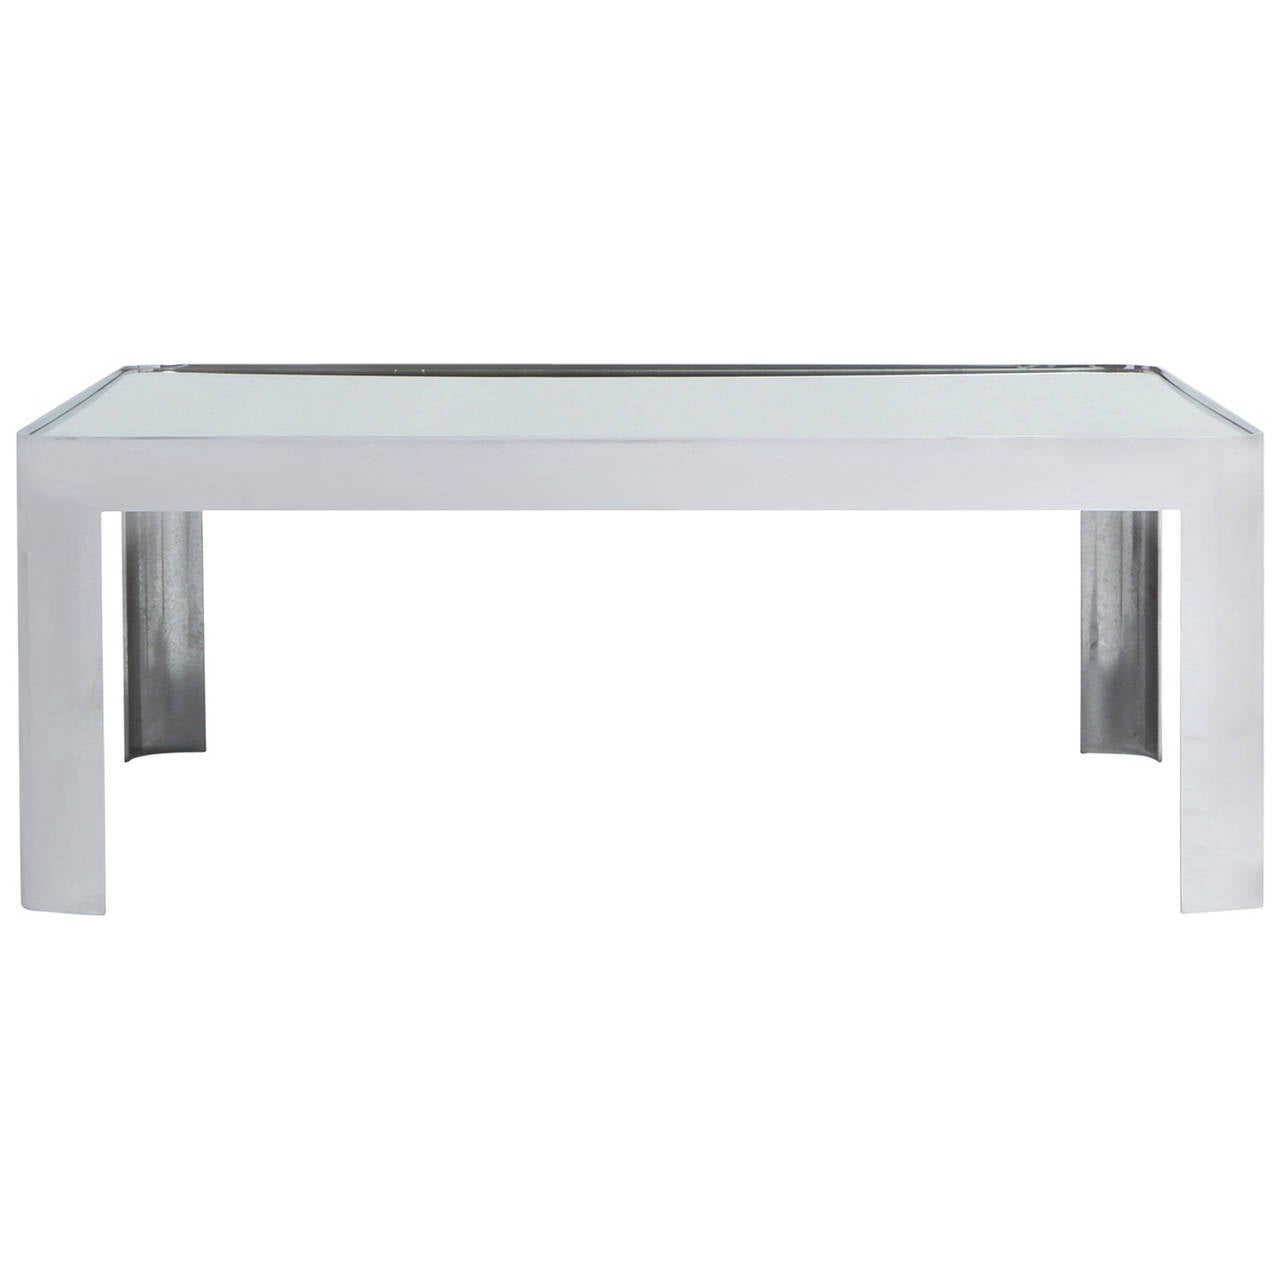 Polished Steel Low Table For Sale